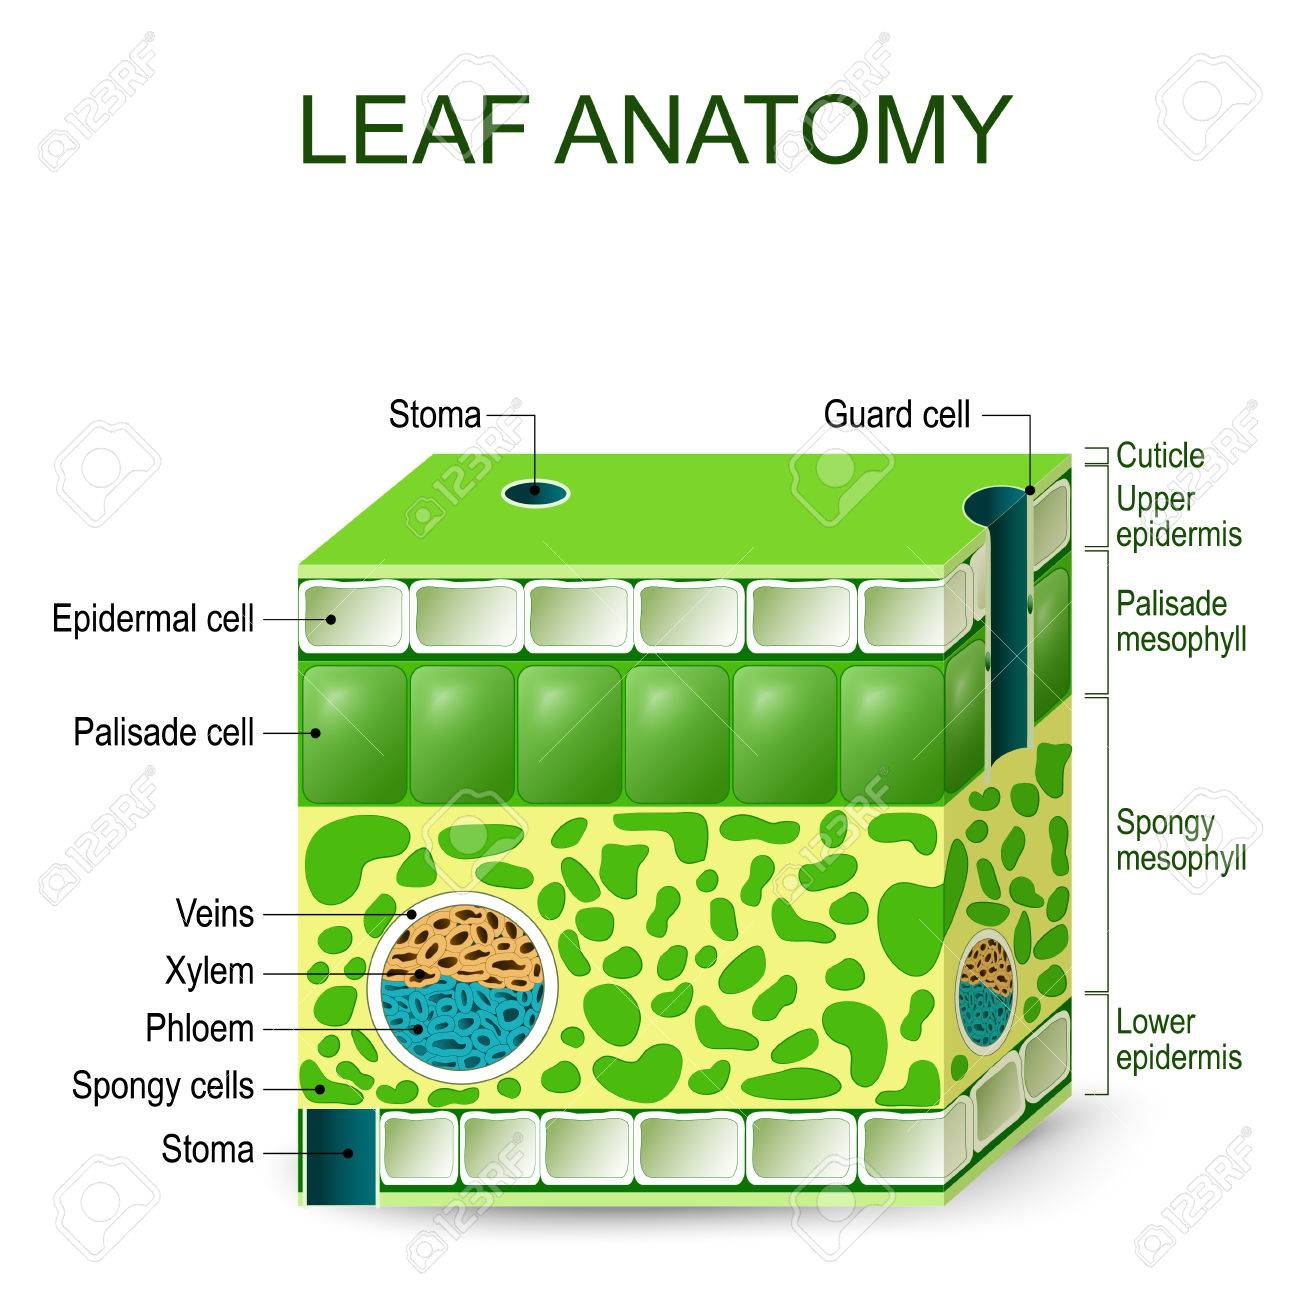 Leaf anatomy vector diagram on a white background royalty free leaf anatomy vector diagram on a white background stock vector 75075059 pooptronica Choice Image